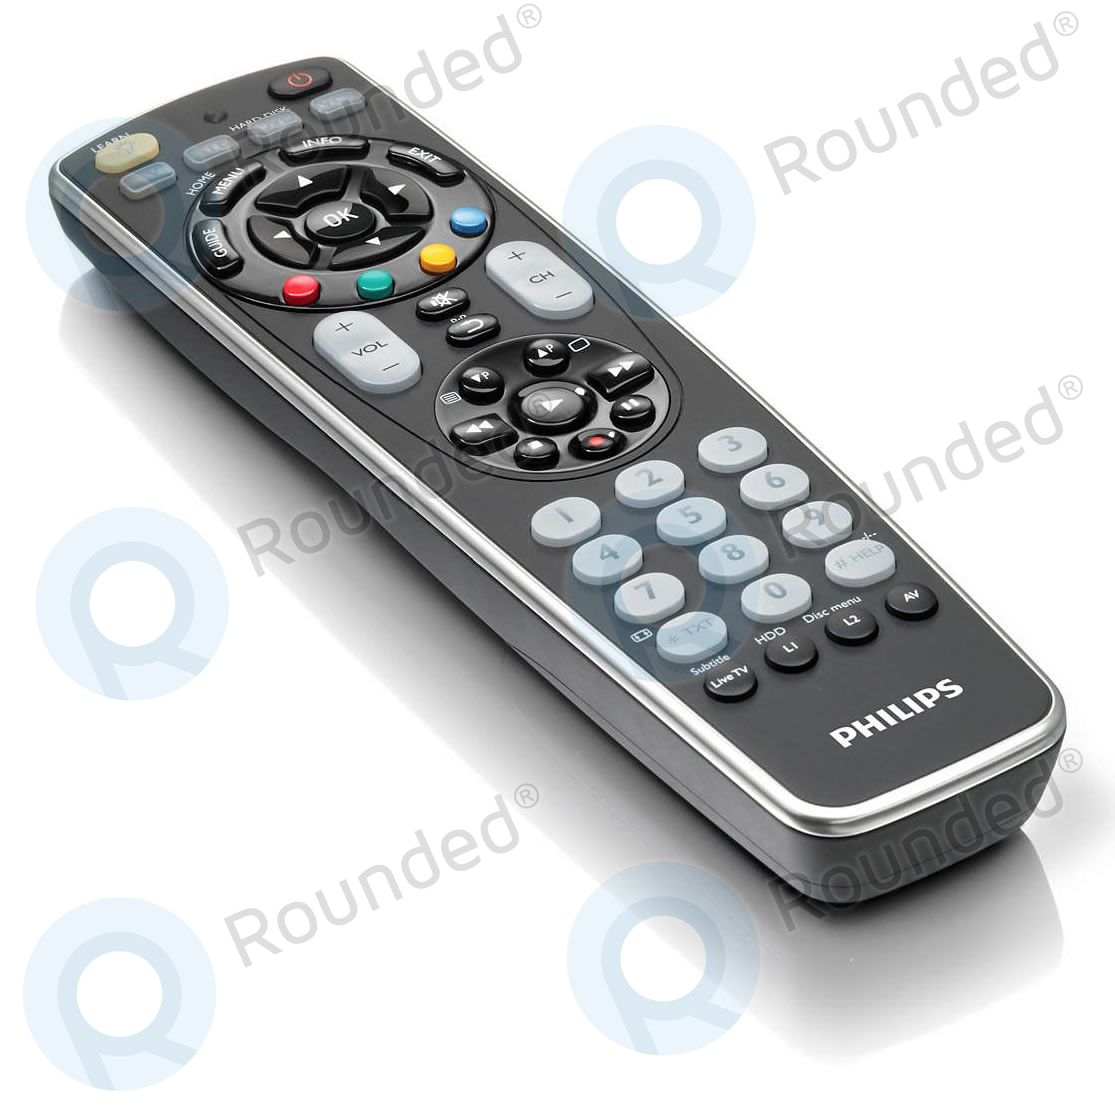 philips universal remote control srp5004 86 4 in 1. Black Bedroom Furniture Sets. Home Design Ideas